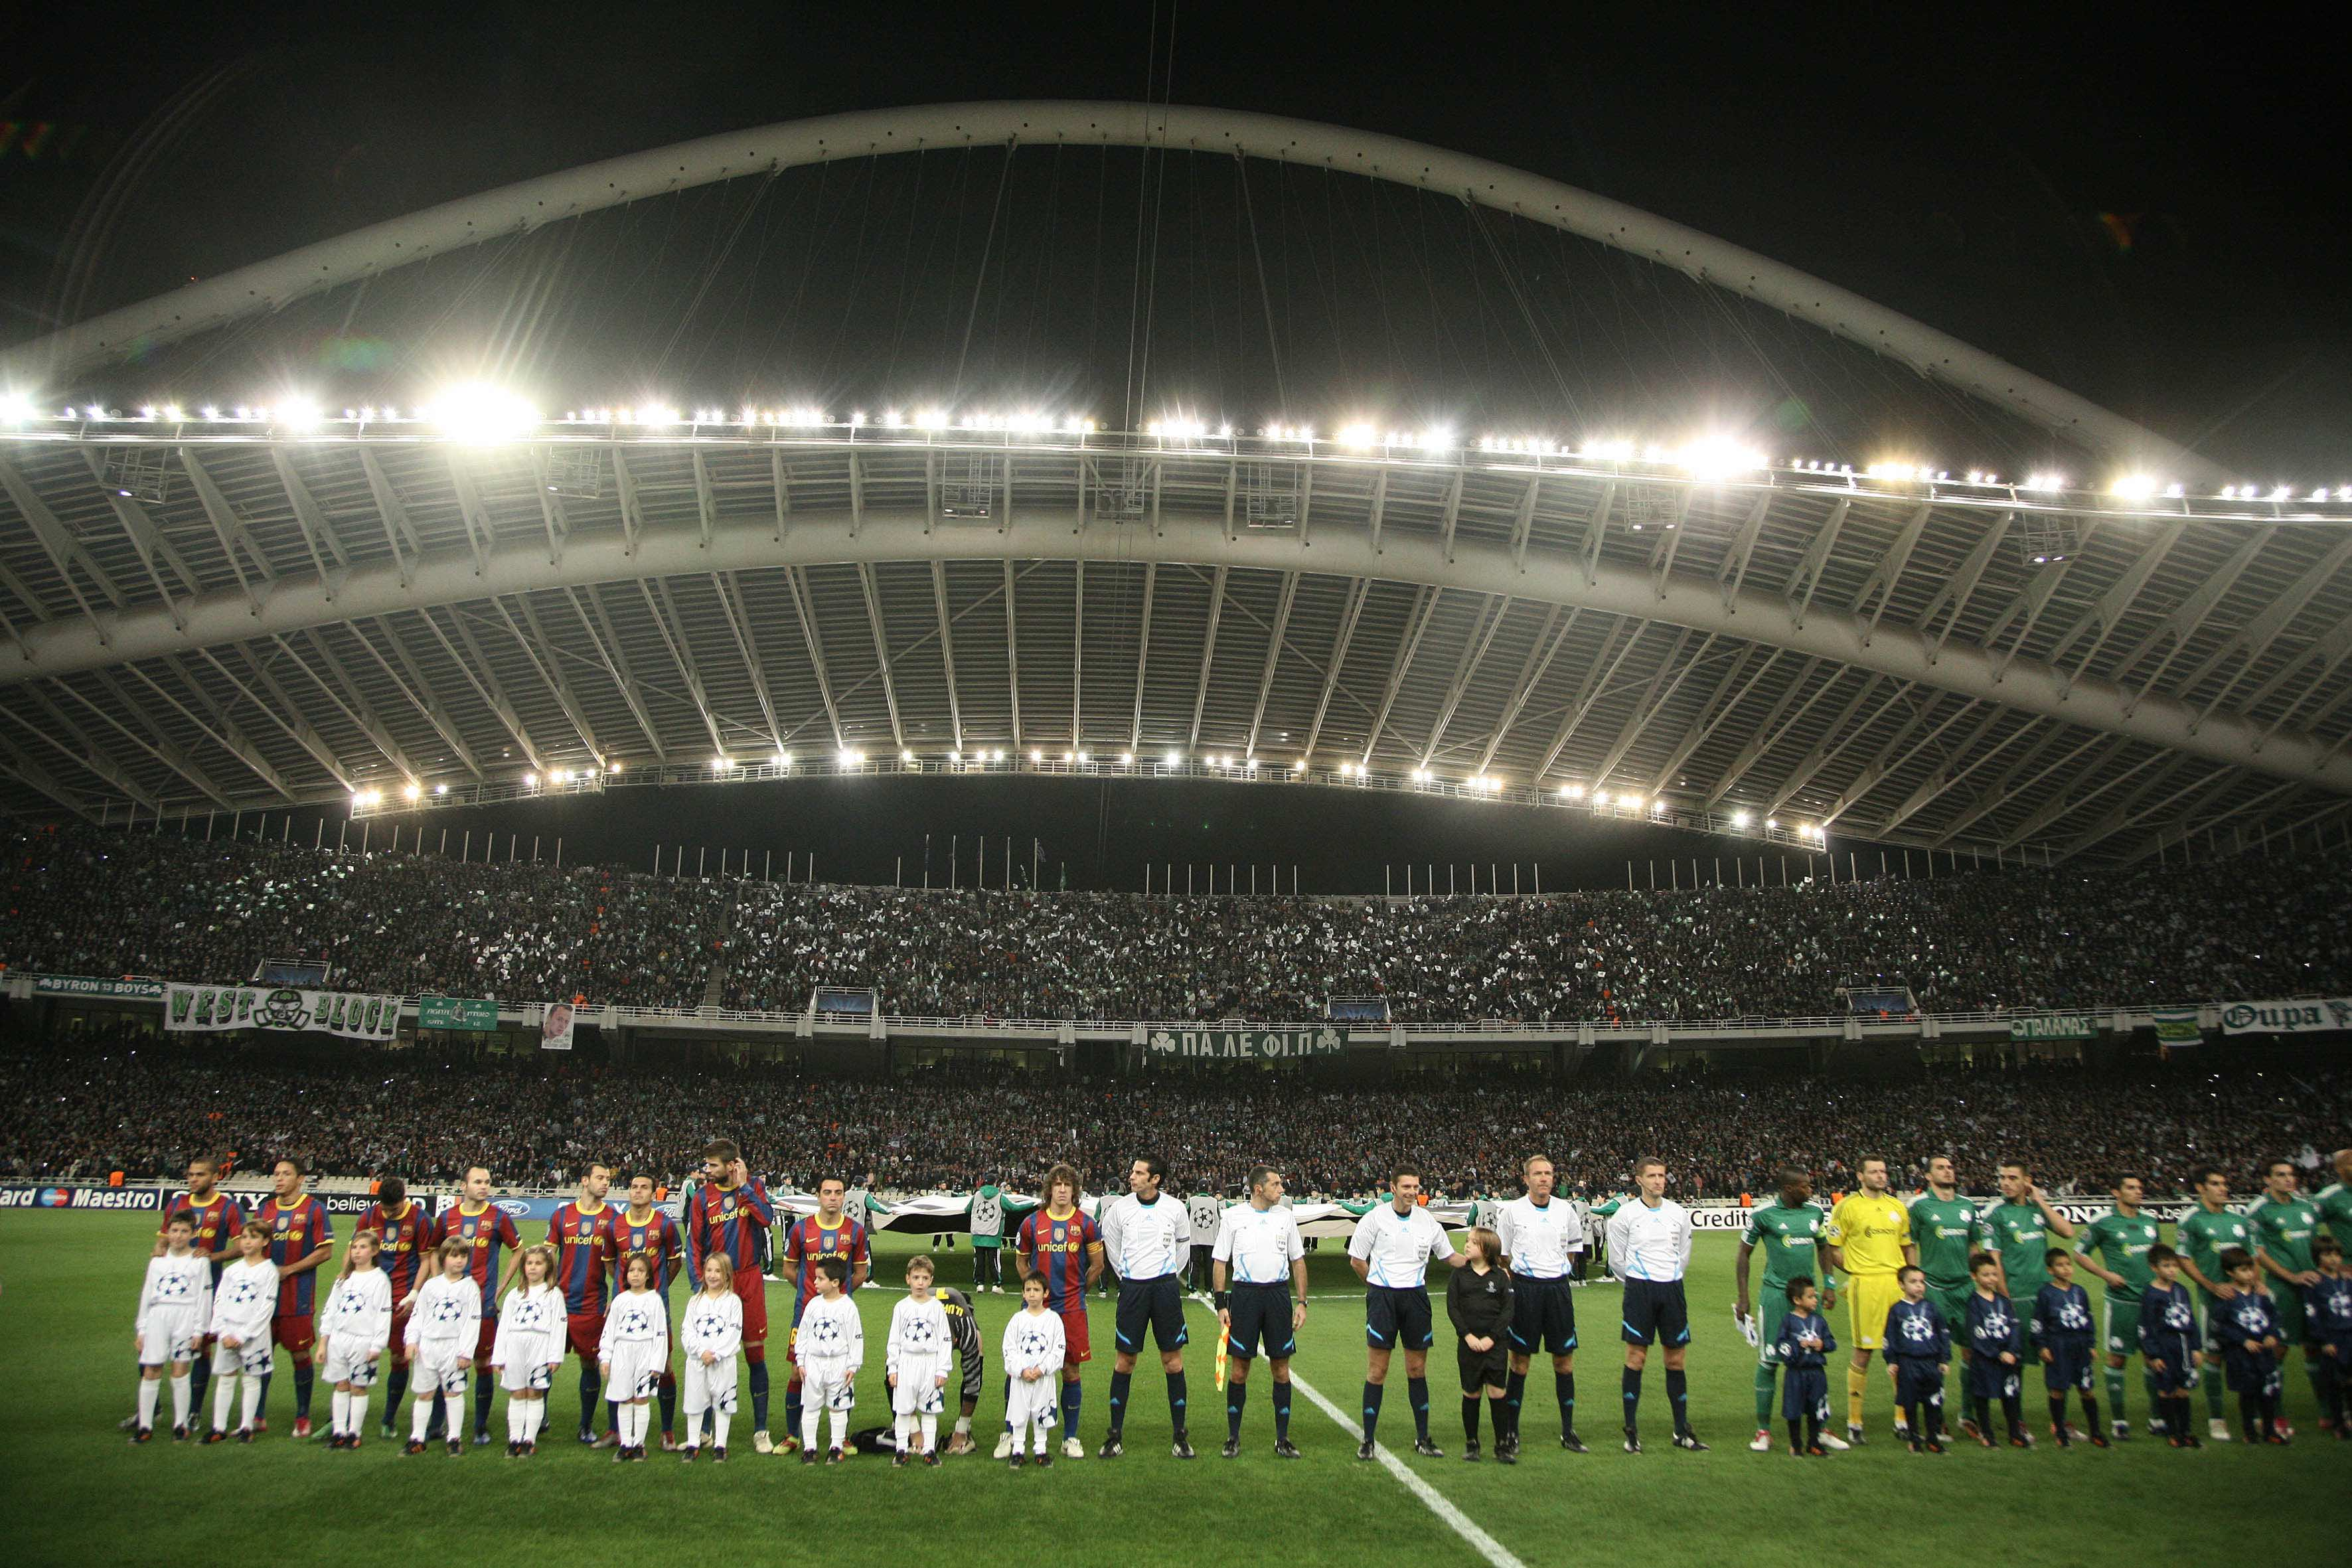 The teams and the fans before the UEFA Champions League group stage match Panathinaikos vs Barcelona in Athens, Greece.